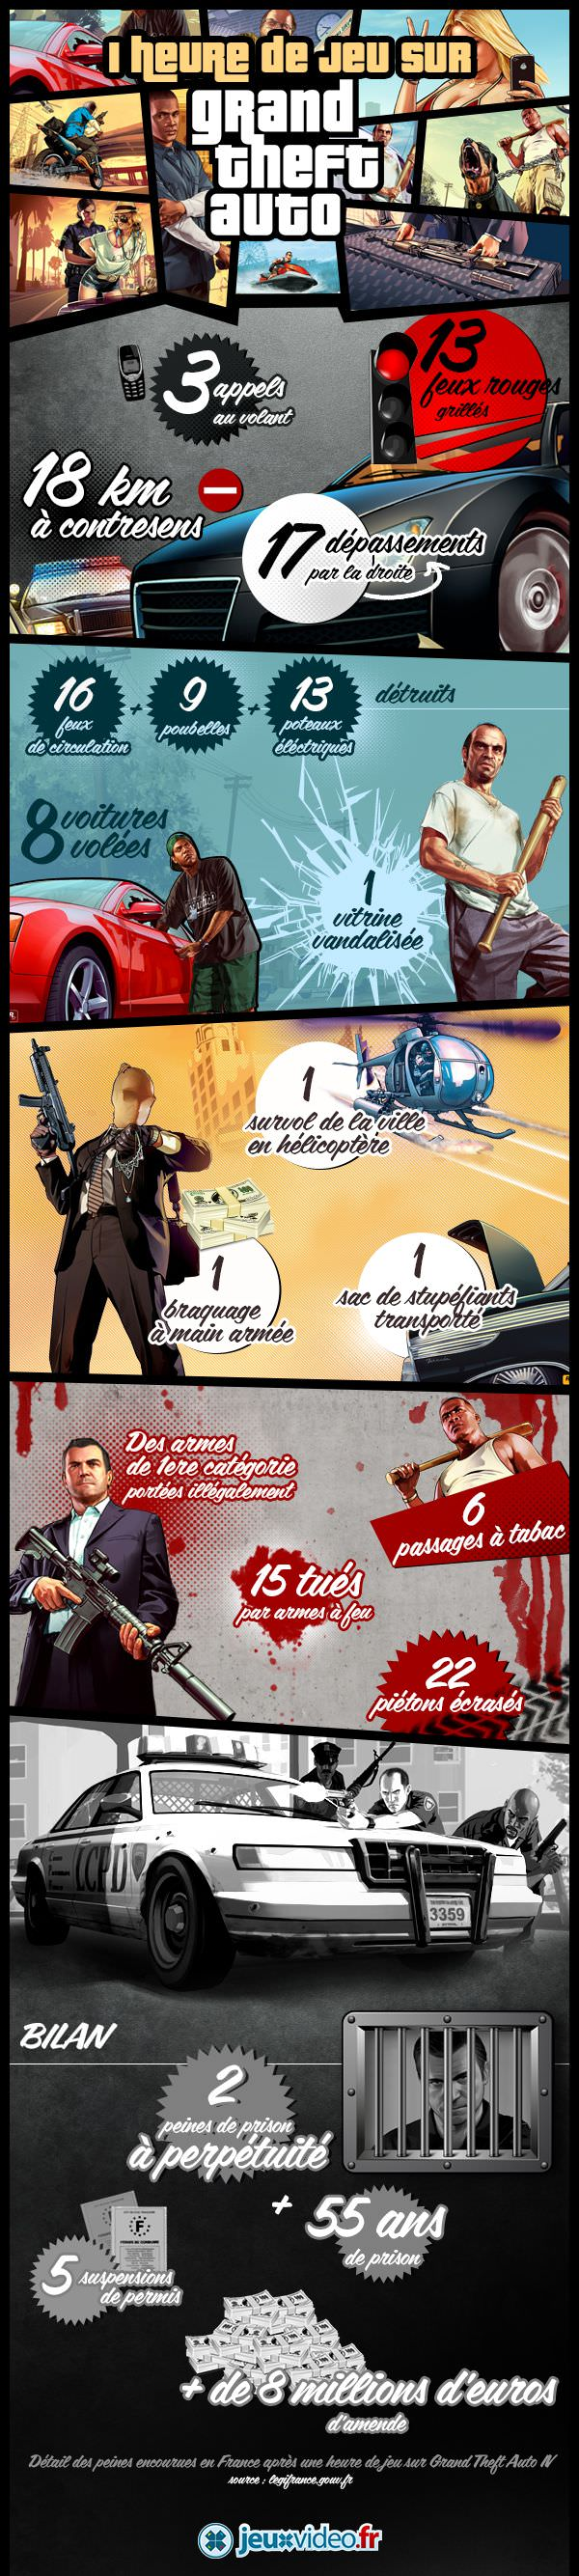 06637308-photo-infographie-gta-5-grand-theft-auto-5-1-h-de-jeu